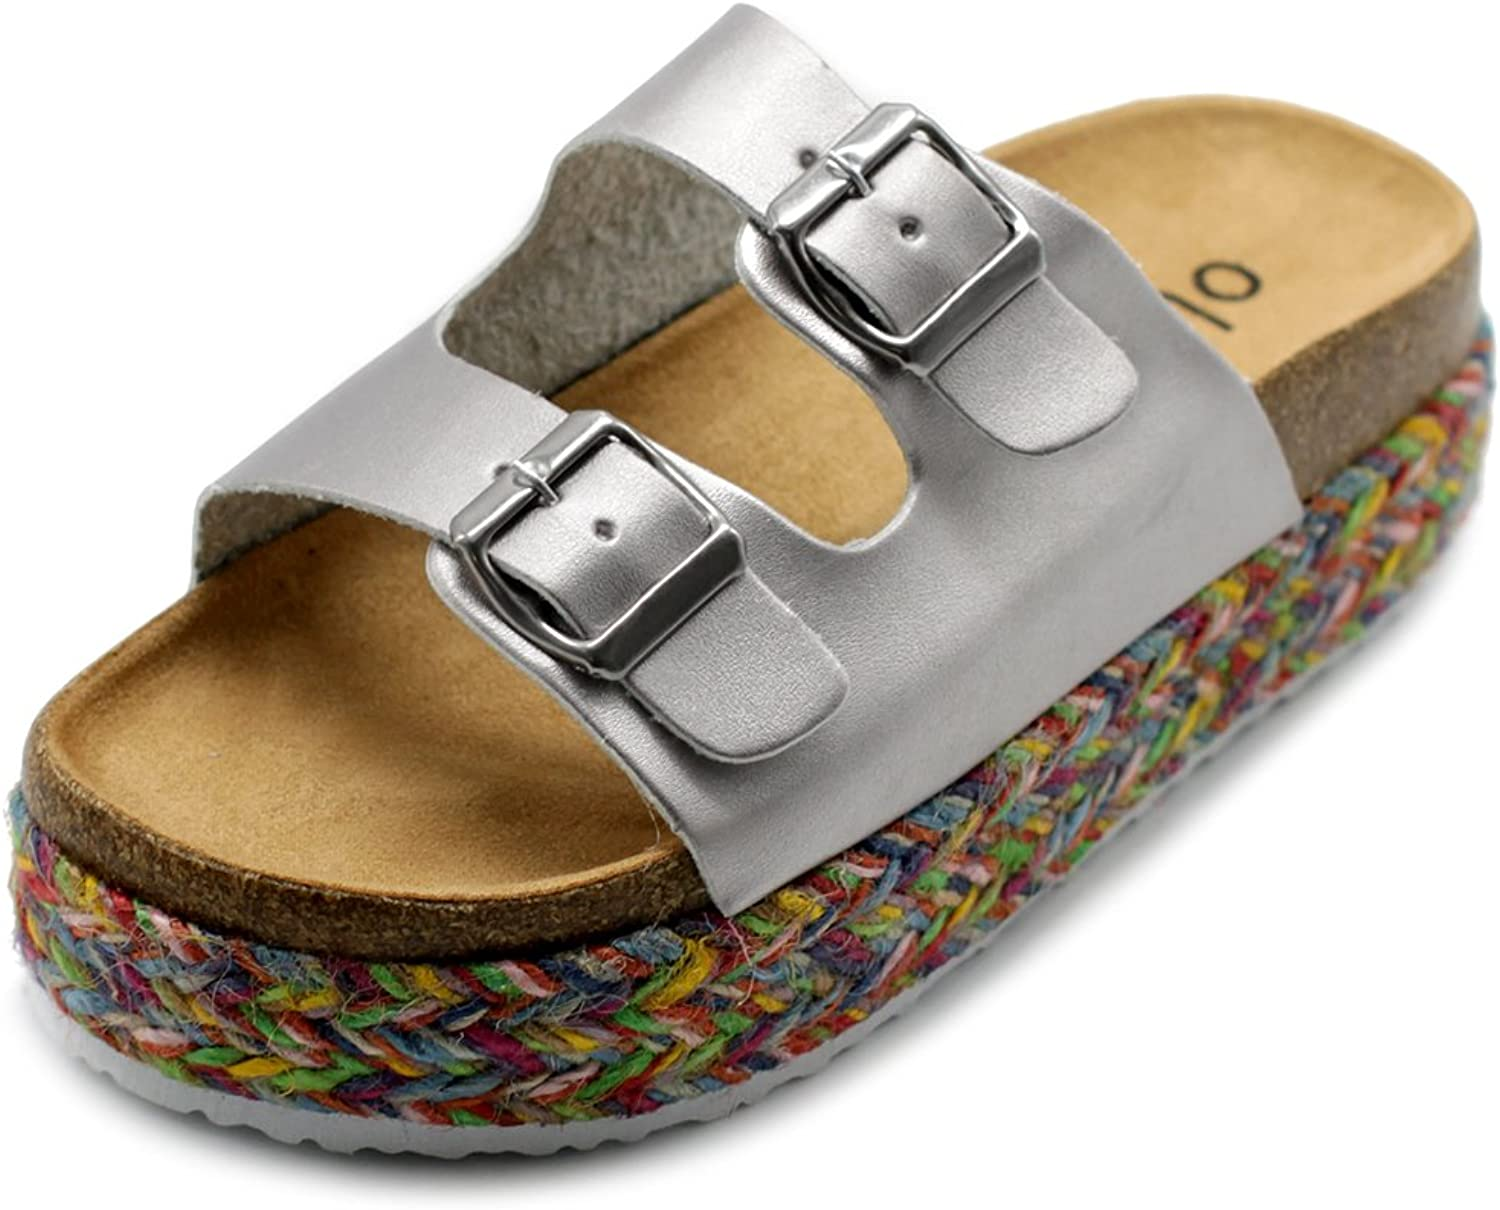 Ollio Womens shoes Slip On Boho Two Strap Platform Espadrilles Cork Sandals GAGE04 (8 B(M) US, Silver)